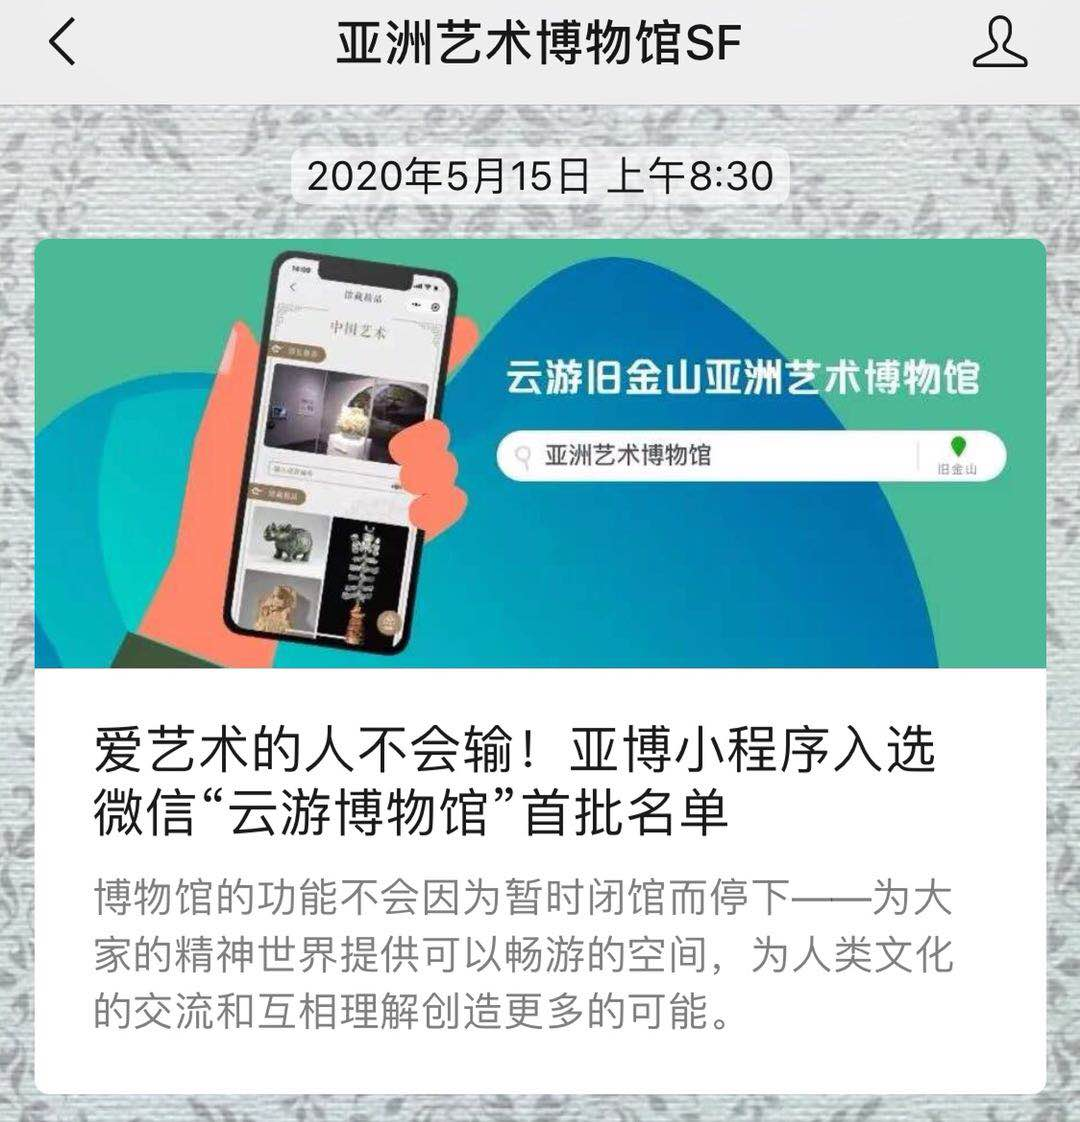 WeChat Promotion of AAM.jpg